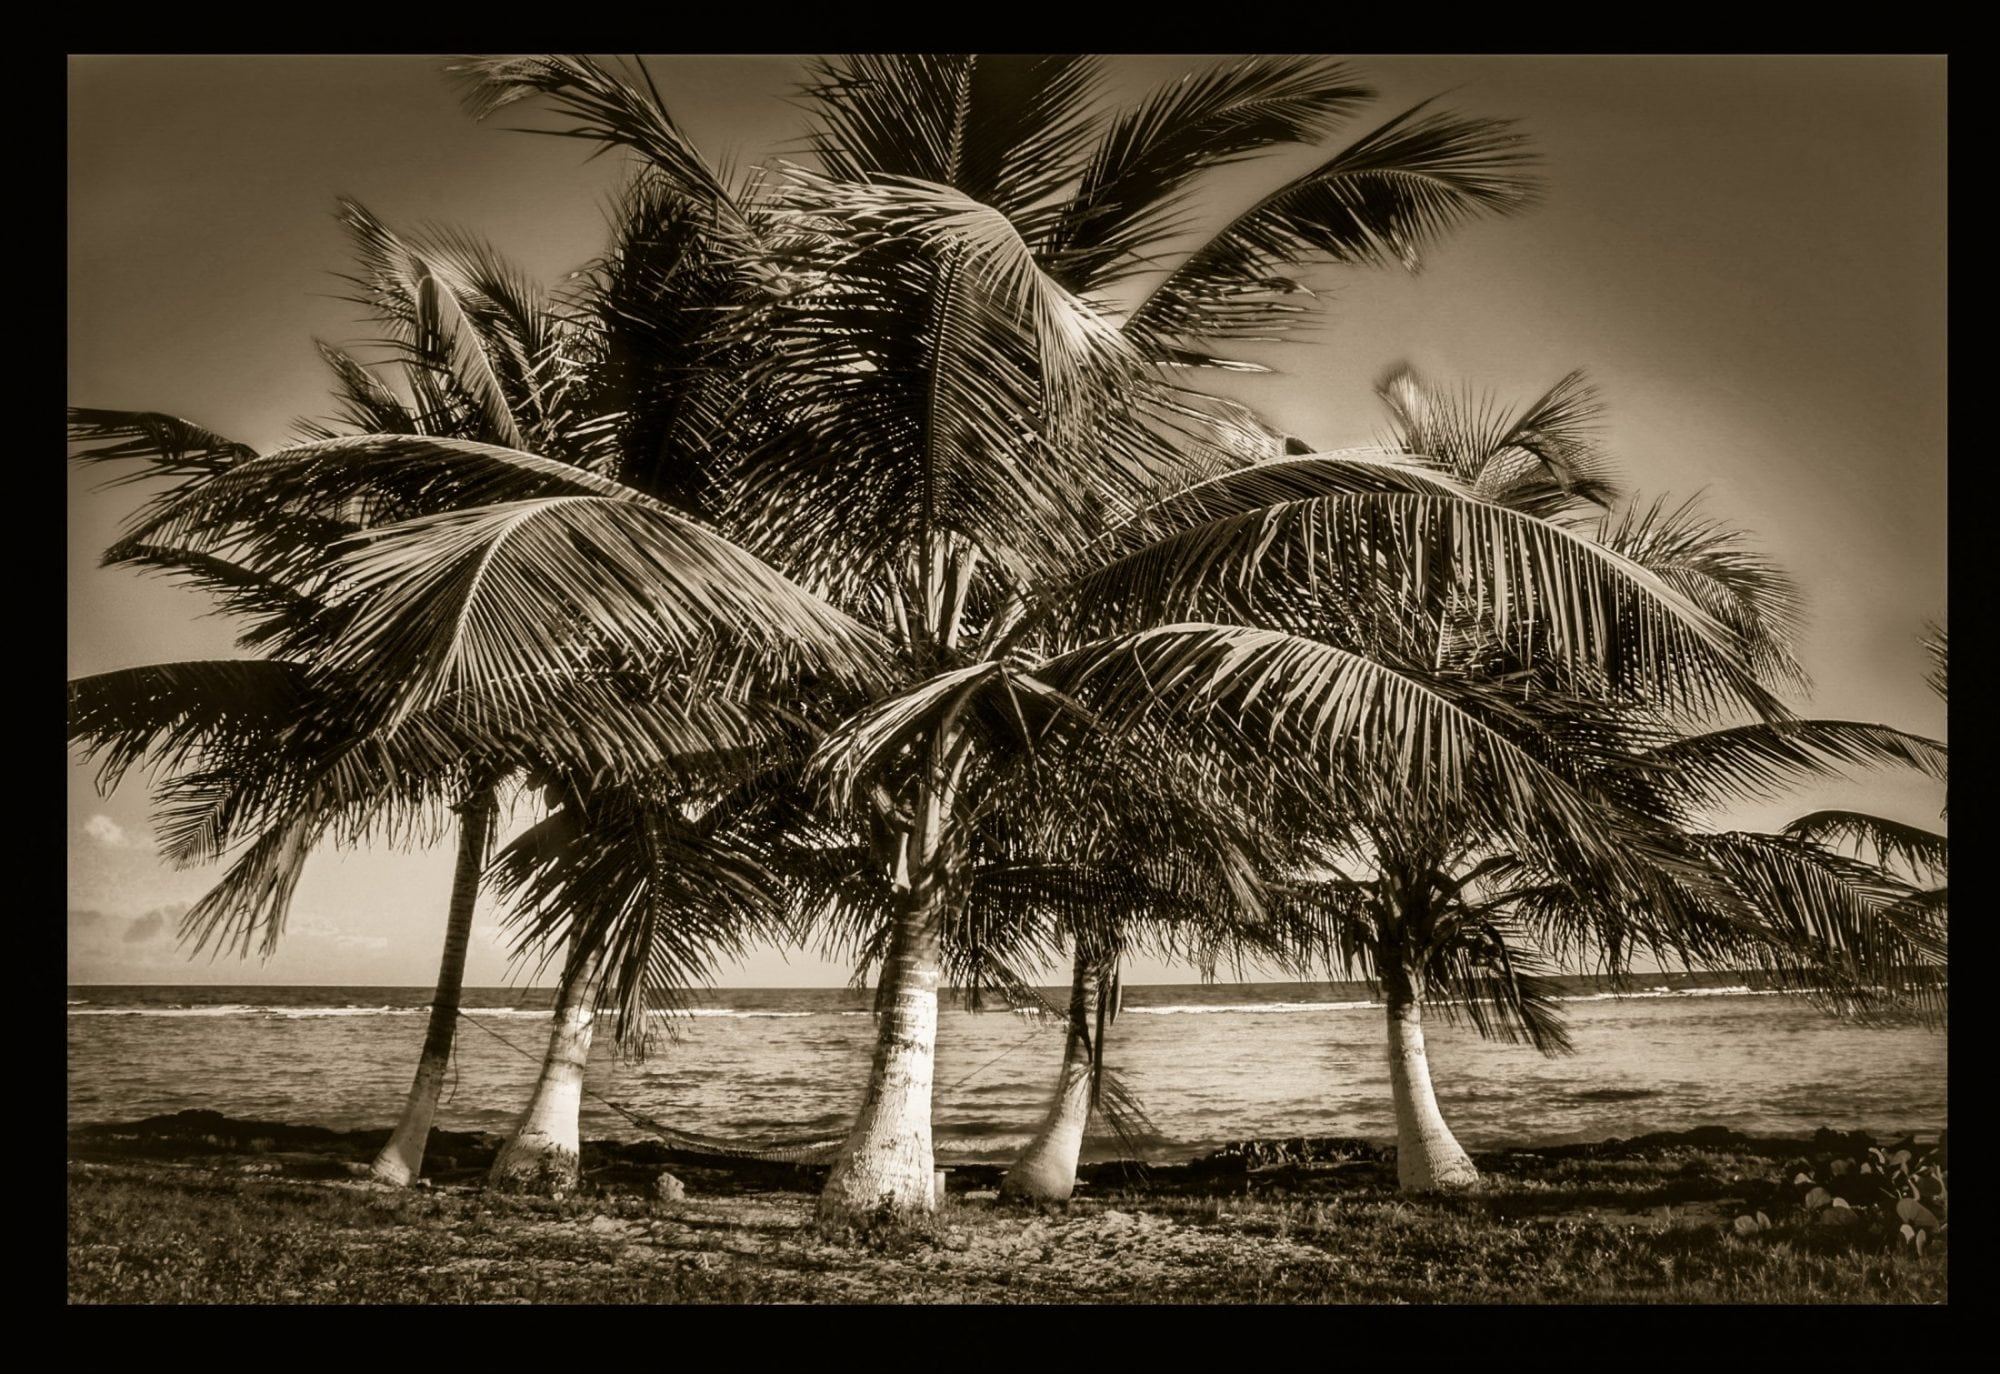 Stanwycks Photography, Black and White in Mexico at the Beach